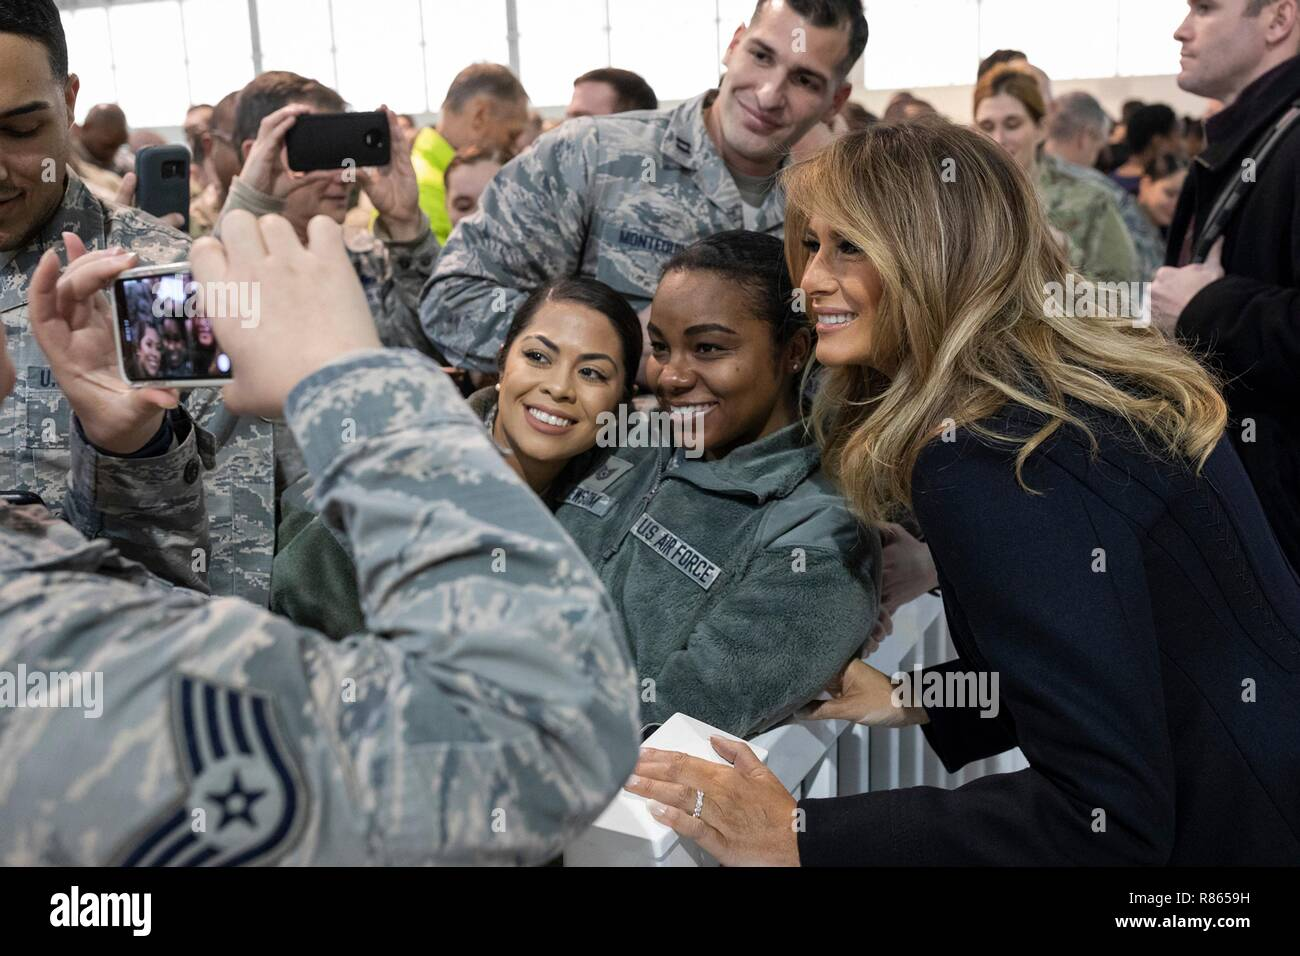 U.S. First Lady Melania Trump poses with service members during a holiday visit to Hangar 789 at Langley Air Force Base December 12, 2018 in Hampton, Virginia. - Stock Image